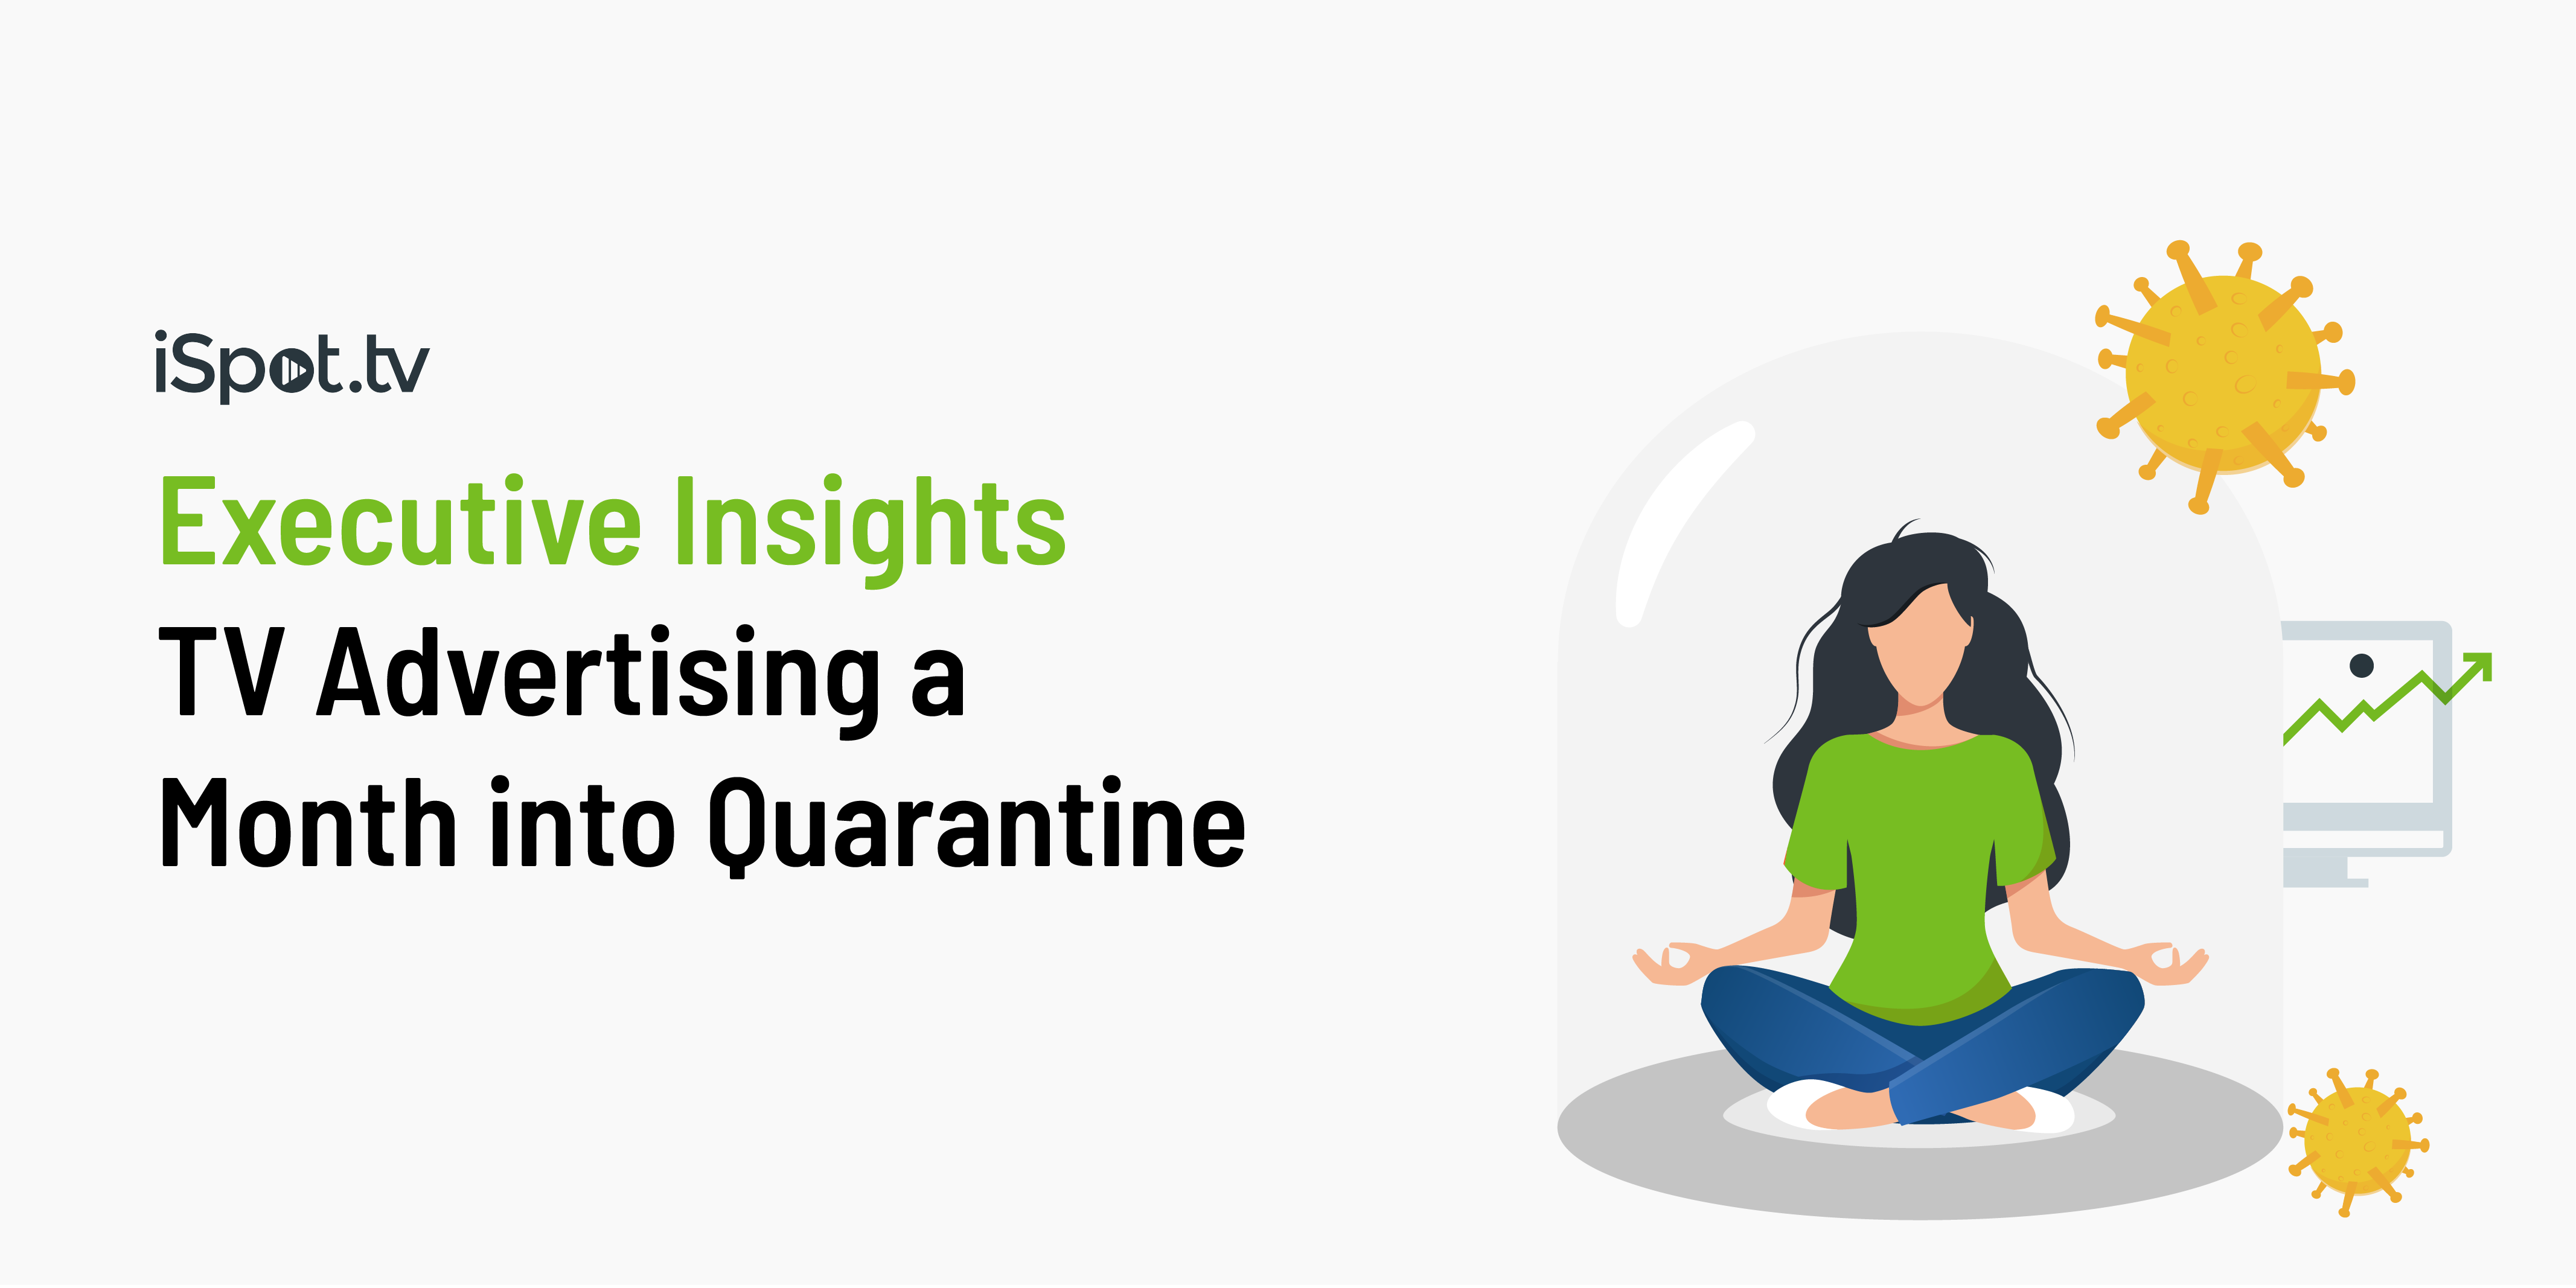 Executive Insights: TV Advertising a Month Into Quarantine